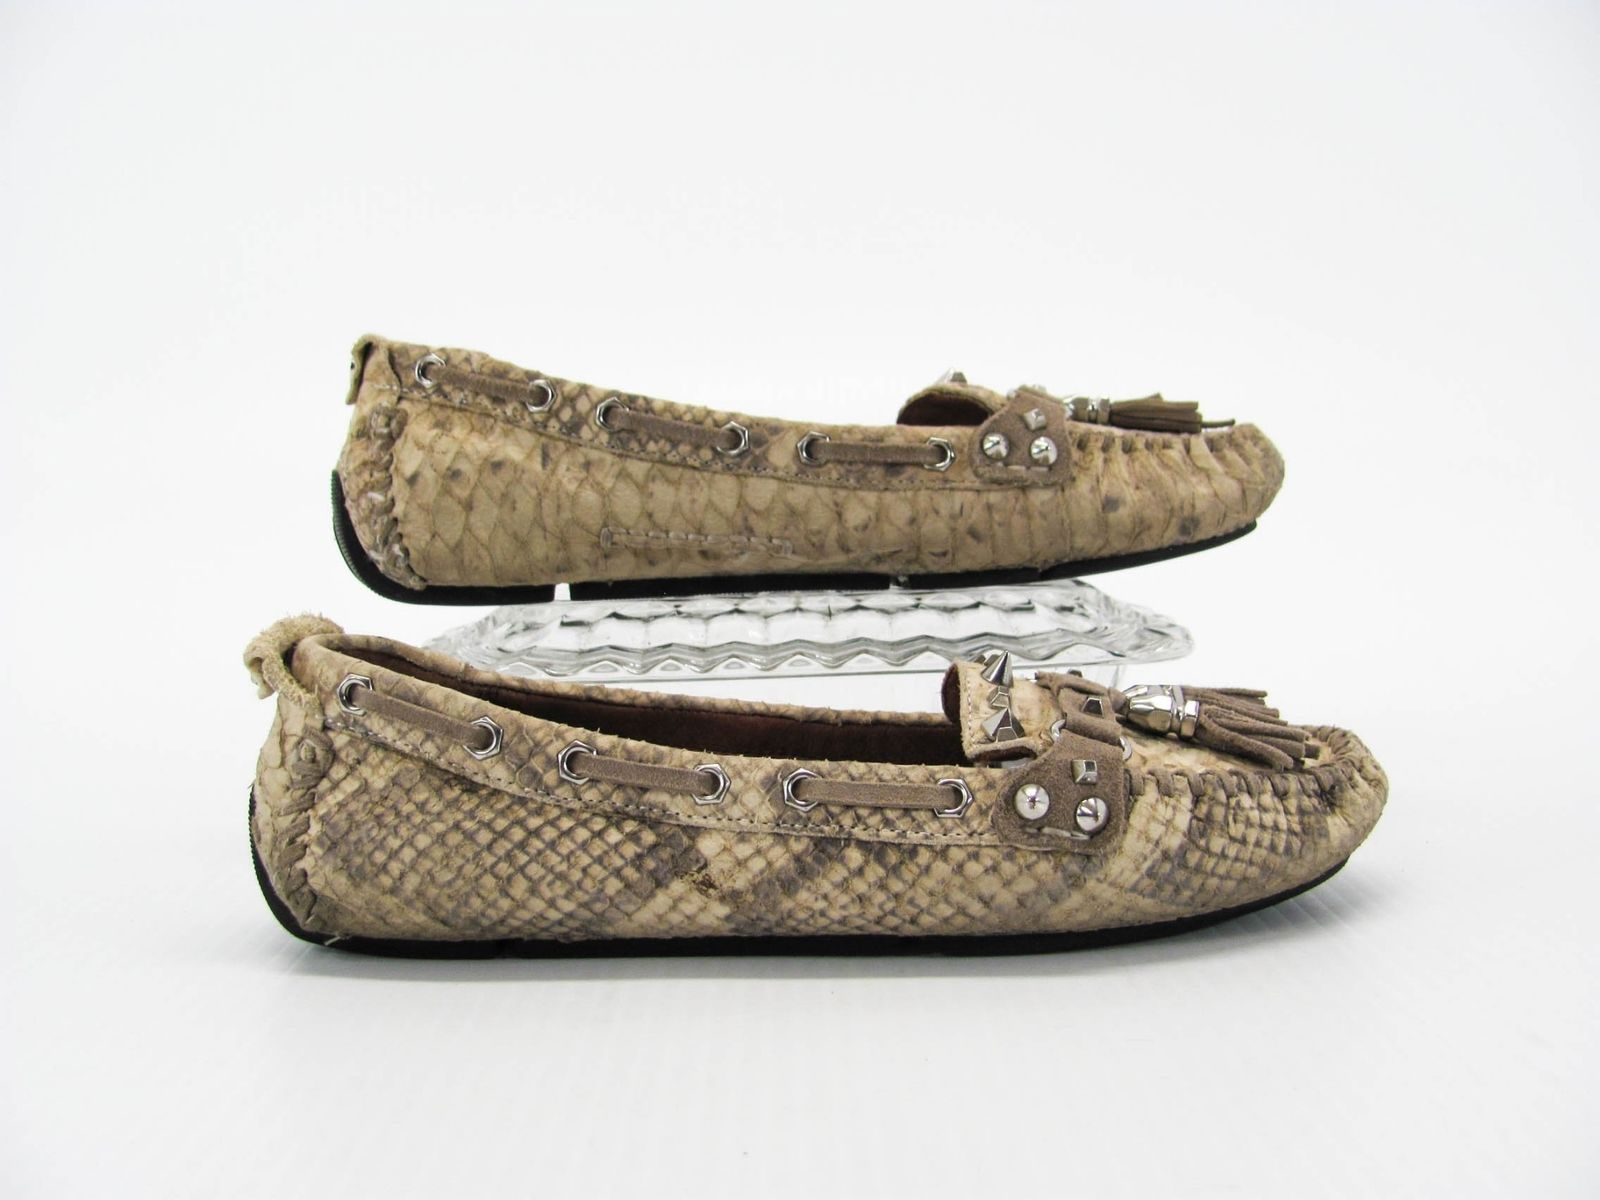 eb34eed99c6d8 34.95 ❤ Sam Edelman Jalen Women Brown Loafer Flats Shoes Size 6.5M Pre Owned